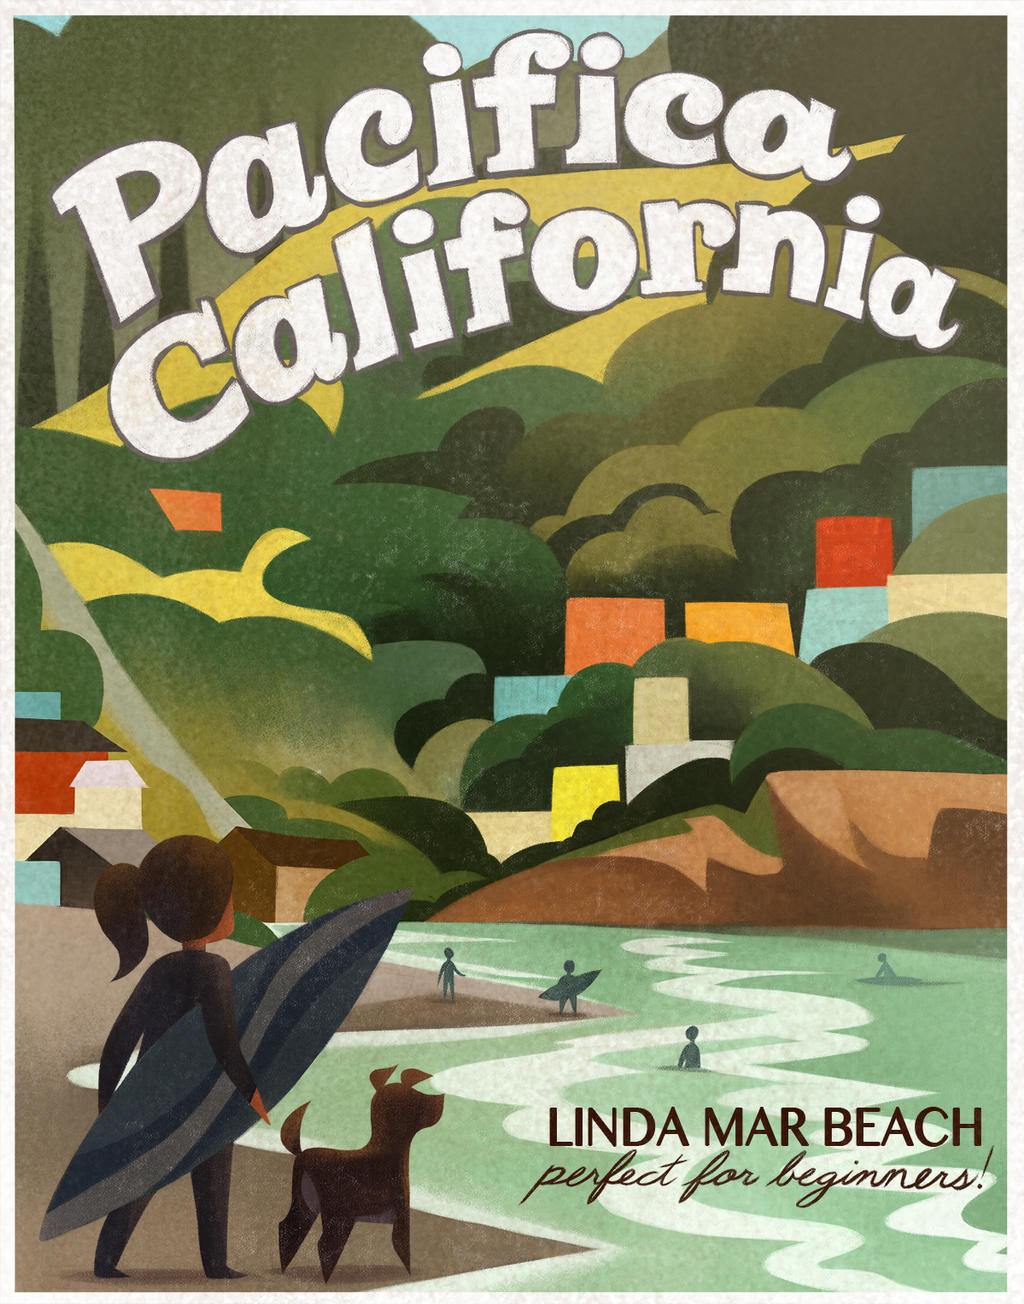 Pacifica, California, Linda Mar Beach illustration